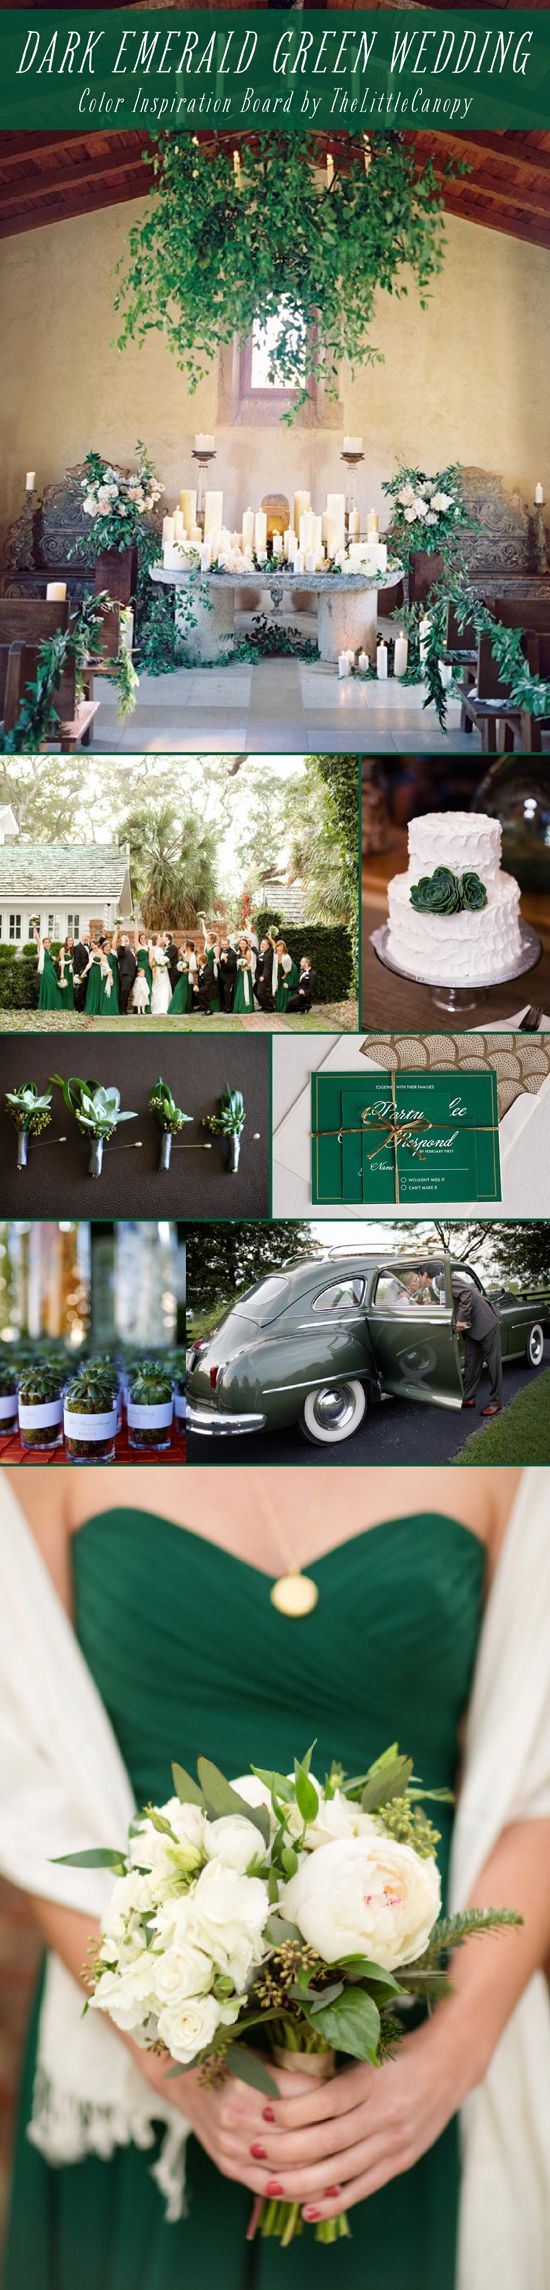 The Little Canopy – Artsy Weddings, Indie Weddings, Vintage Weddings, DIY Weddings » Blog Archive » Inspiration Board: Dark Emerald Green Wedding